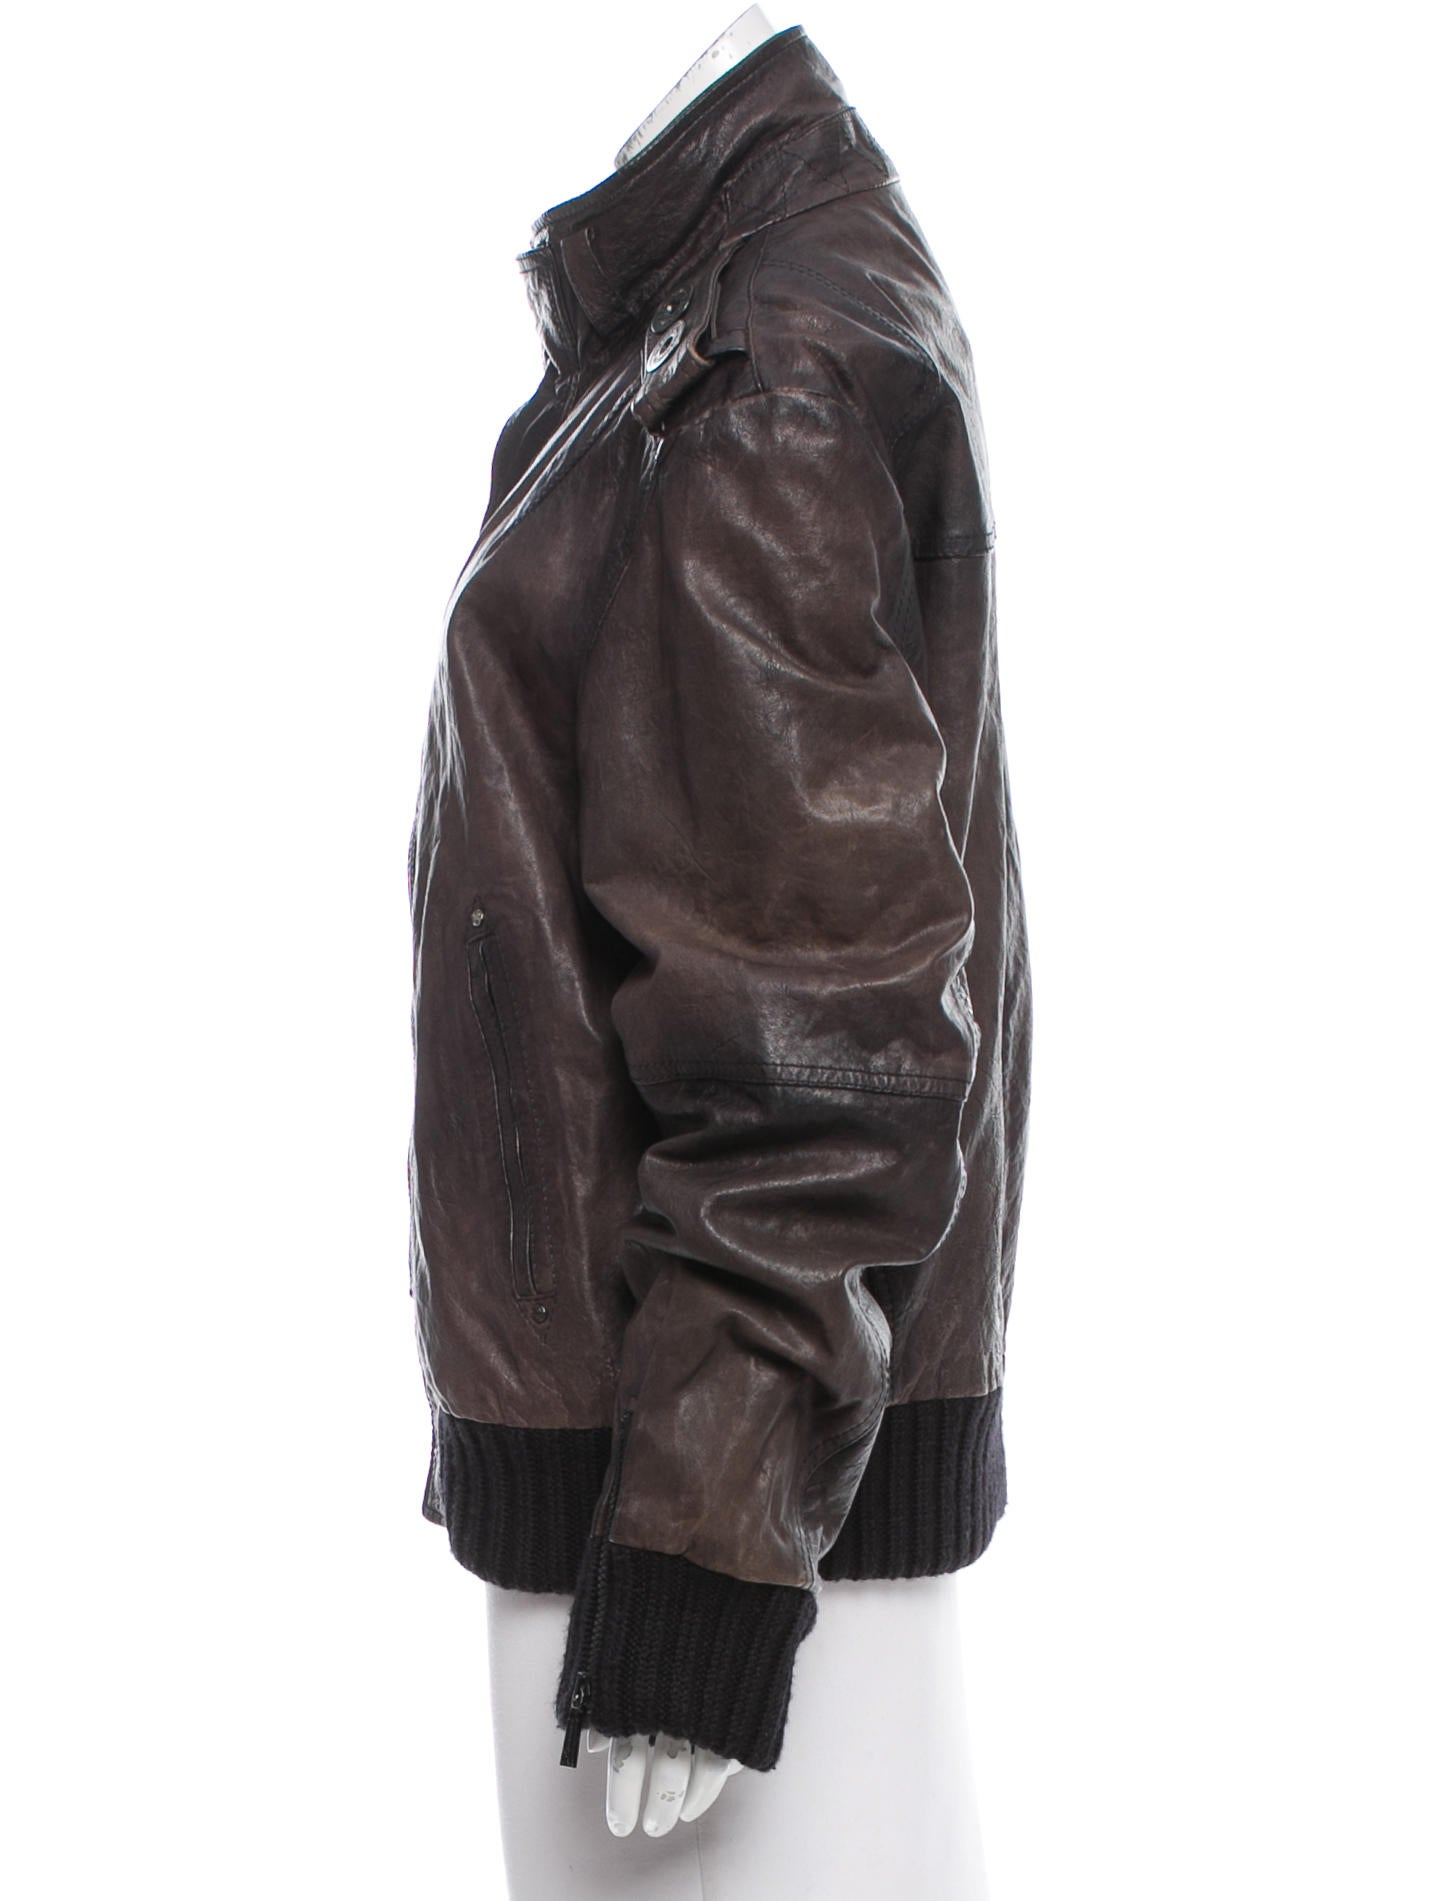 Richmond X Leather Button-Up Jacket - Clothing ...